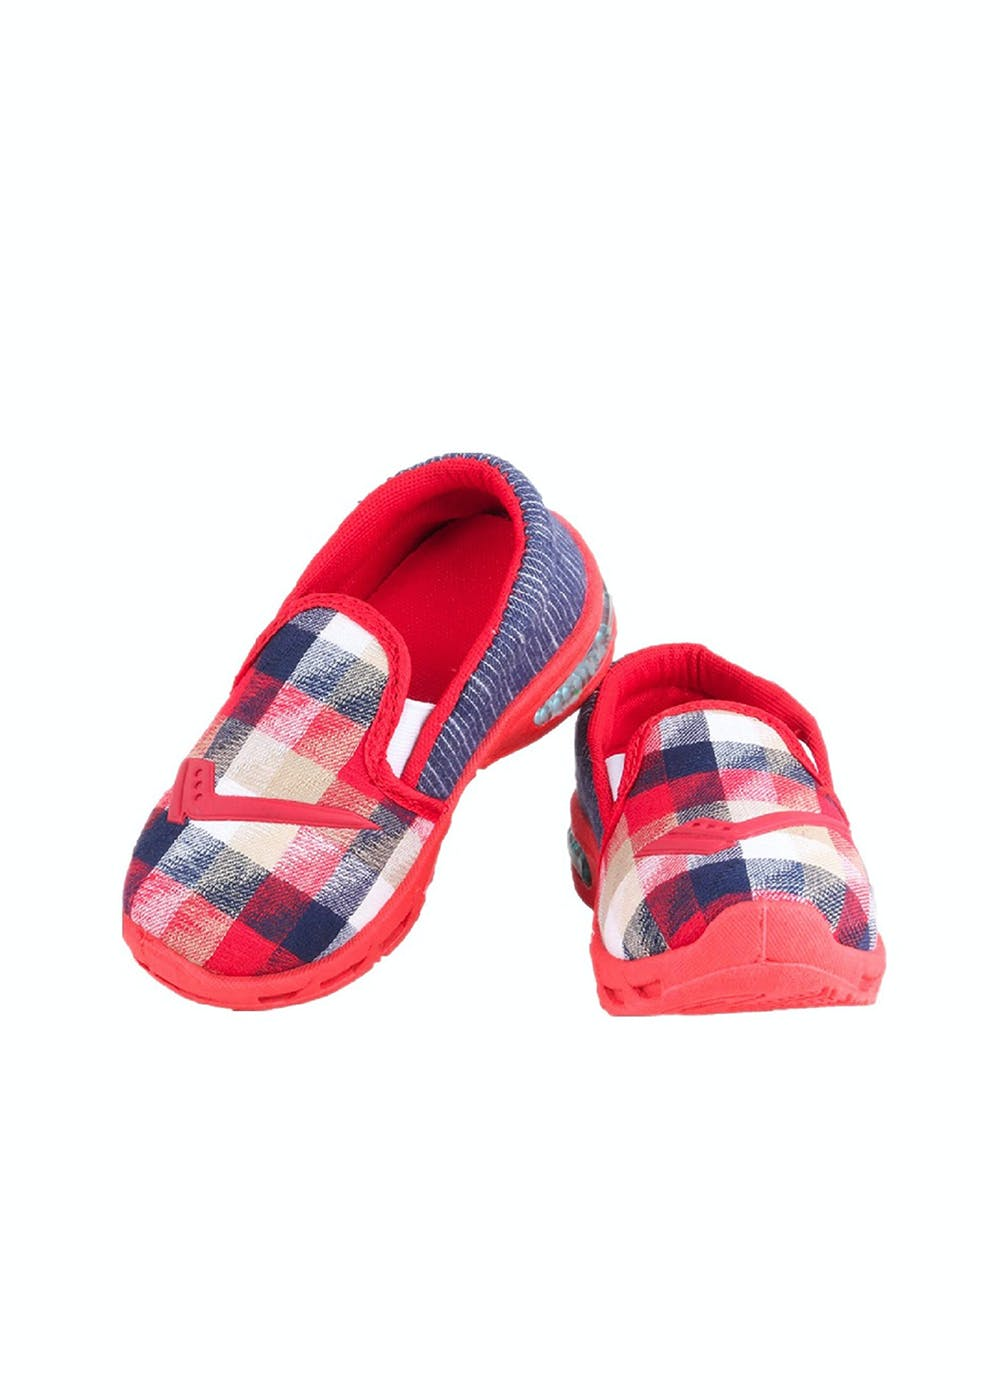 Red Slip on Casual Boots